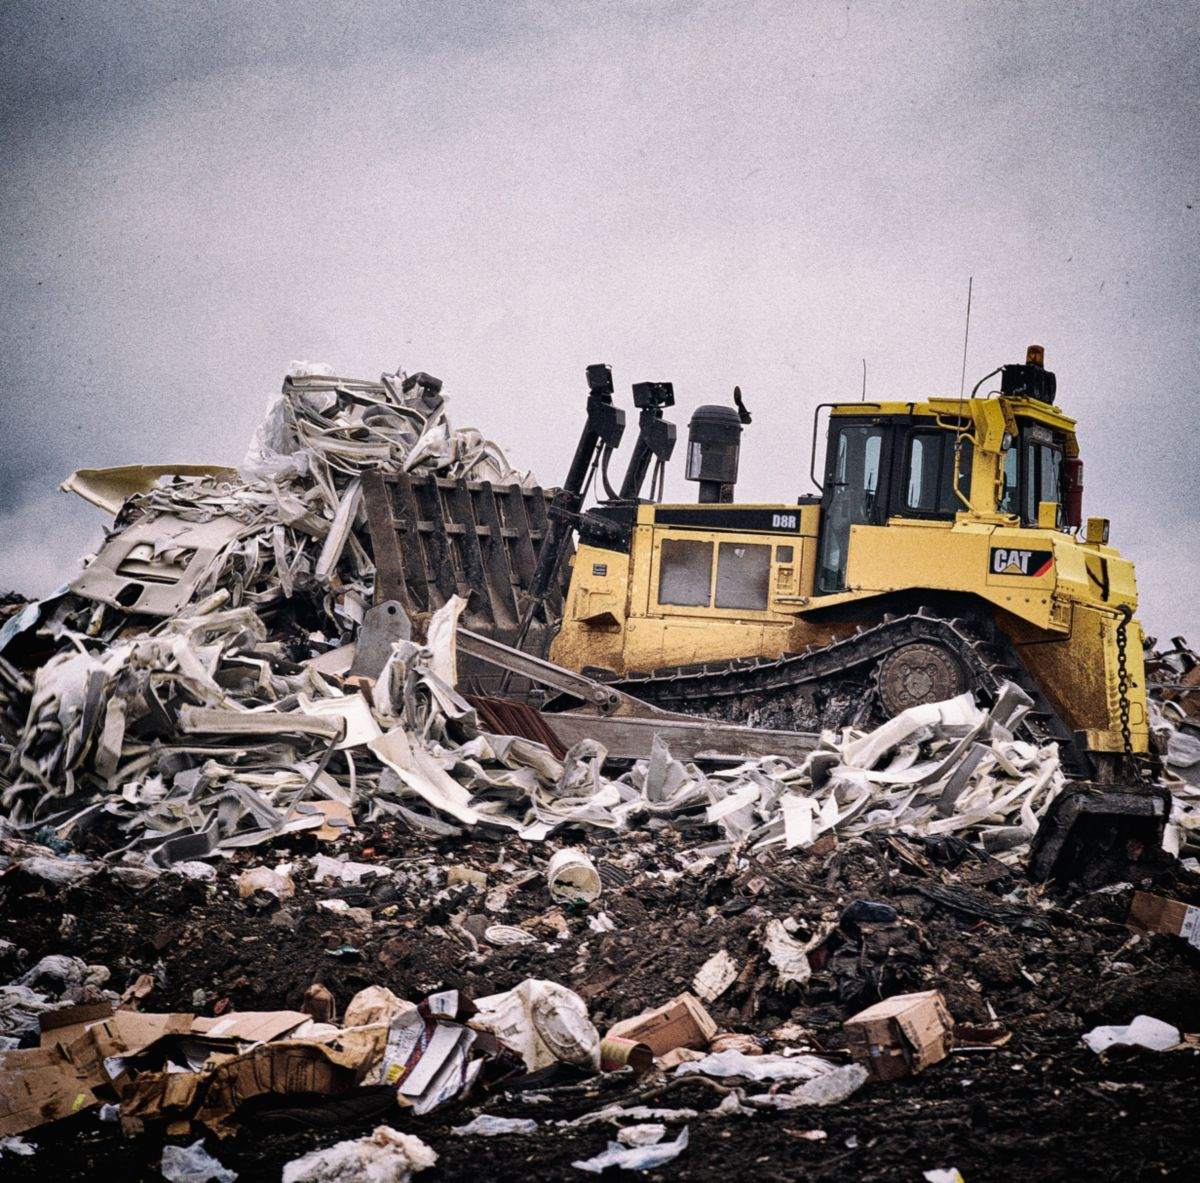 Caterpillar machine pushing waste.